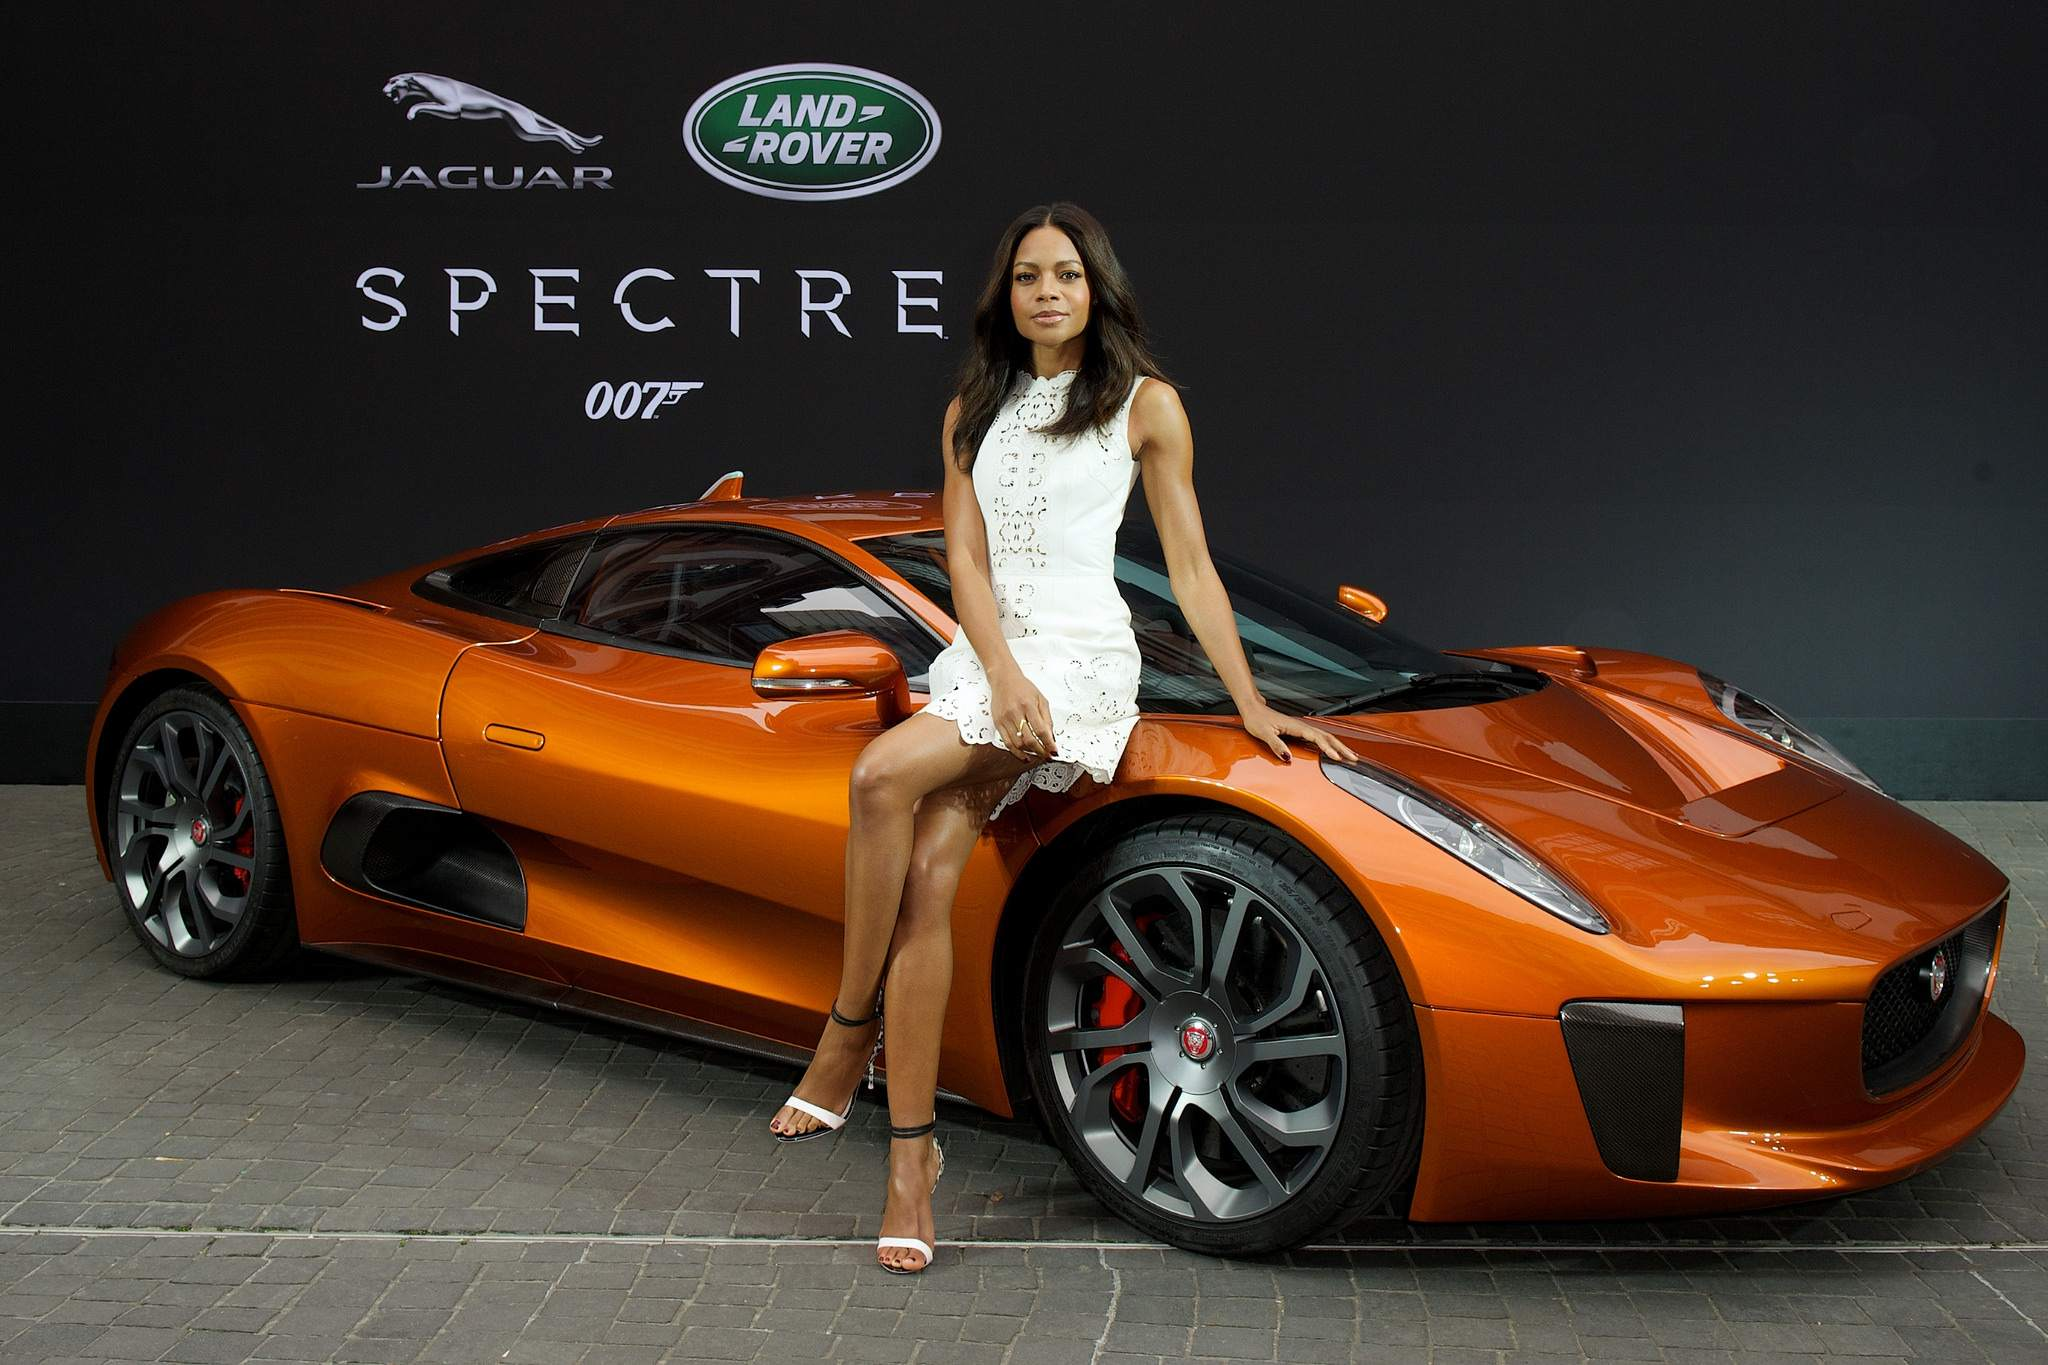 spectre car2 Jaguar Land Rover Latest Bond Cars